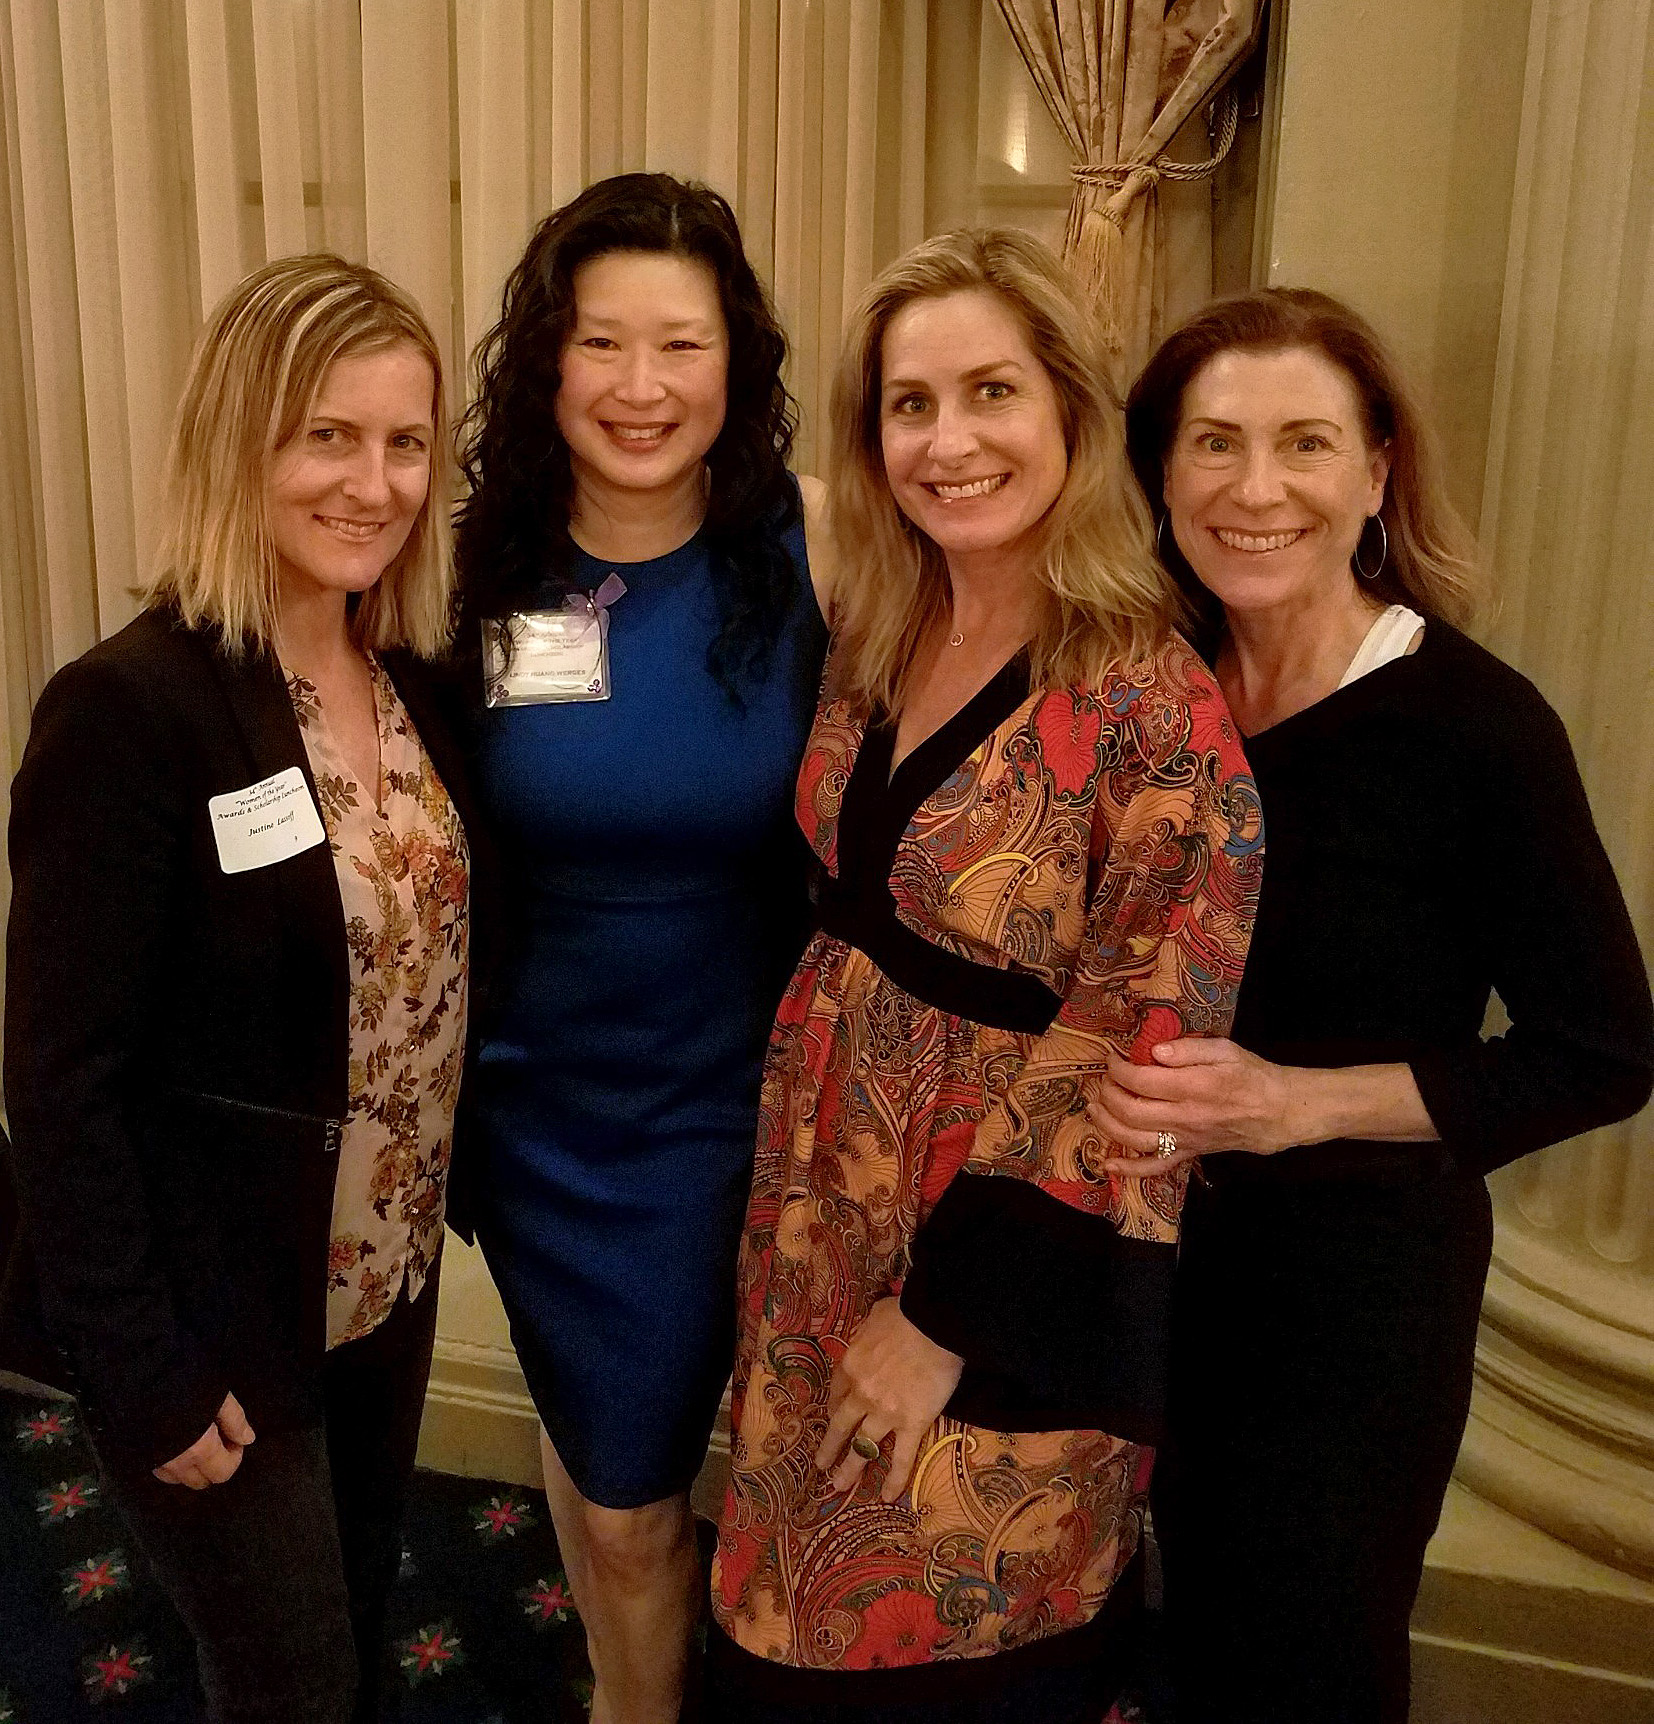 Justine Lassoff  (Co-Founder,  Love Goodly  +  TuesdayNights ); Lindy Huang Werges (Founder,  Integritas Resources  + Co-Founder,  Zen Yoga Strap ;  Melinda Moore  ( Assembled Brands  + Co-Founder,  TuesdayNights );  Diane Reichenberger  ( Mattel  + Co-Founder,  Women's Accelerator )